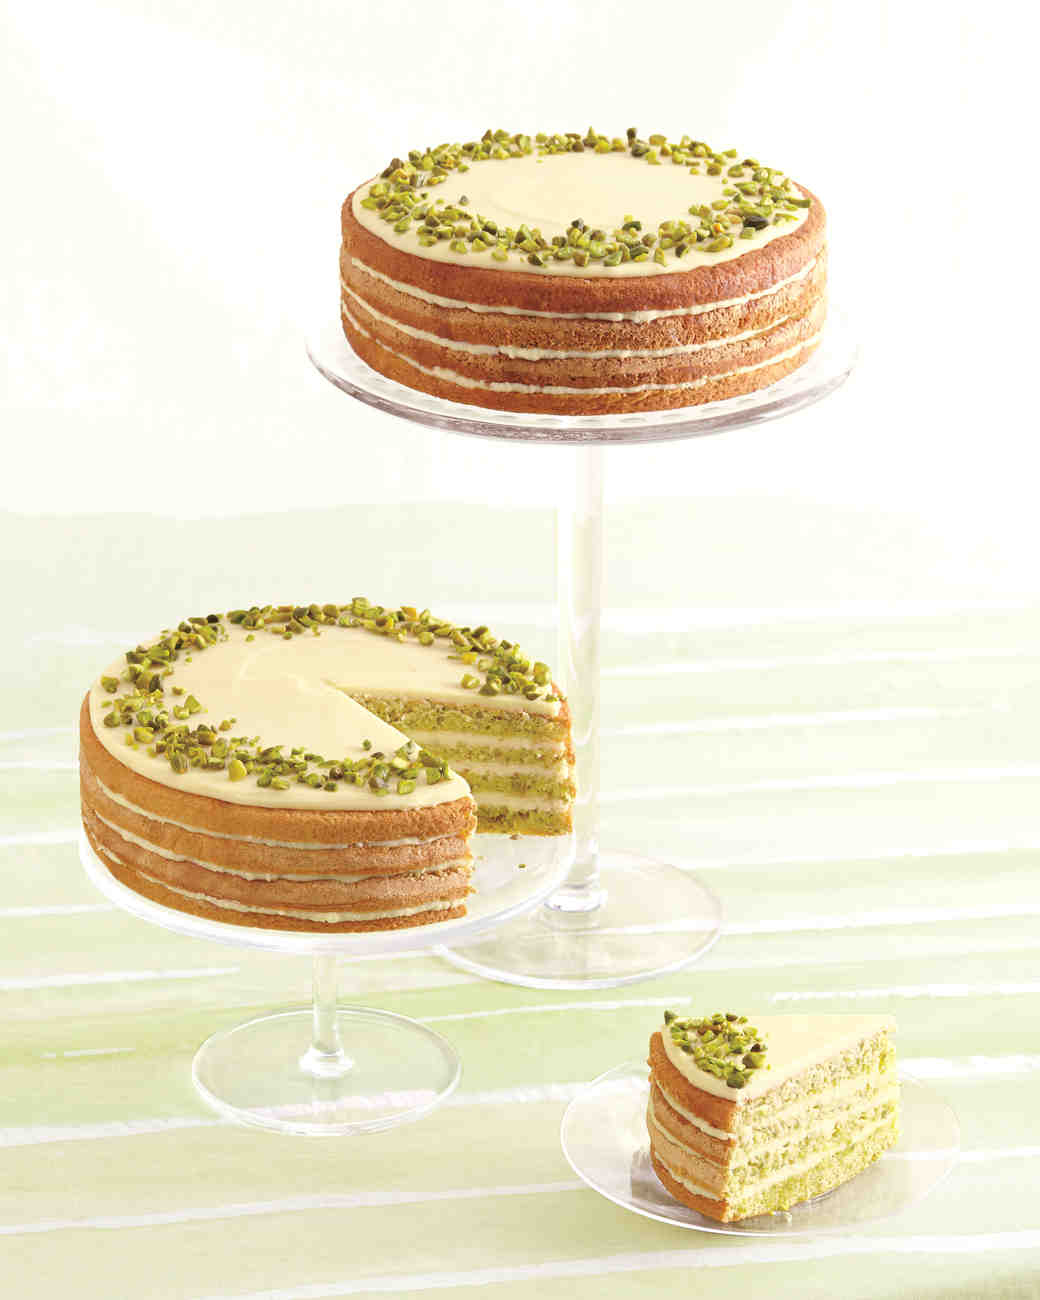 Naked Cake with Chopped Nuts